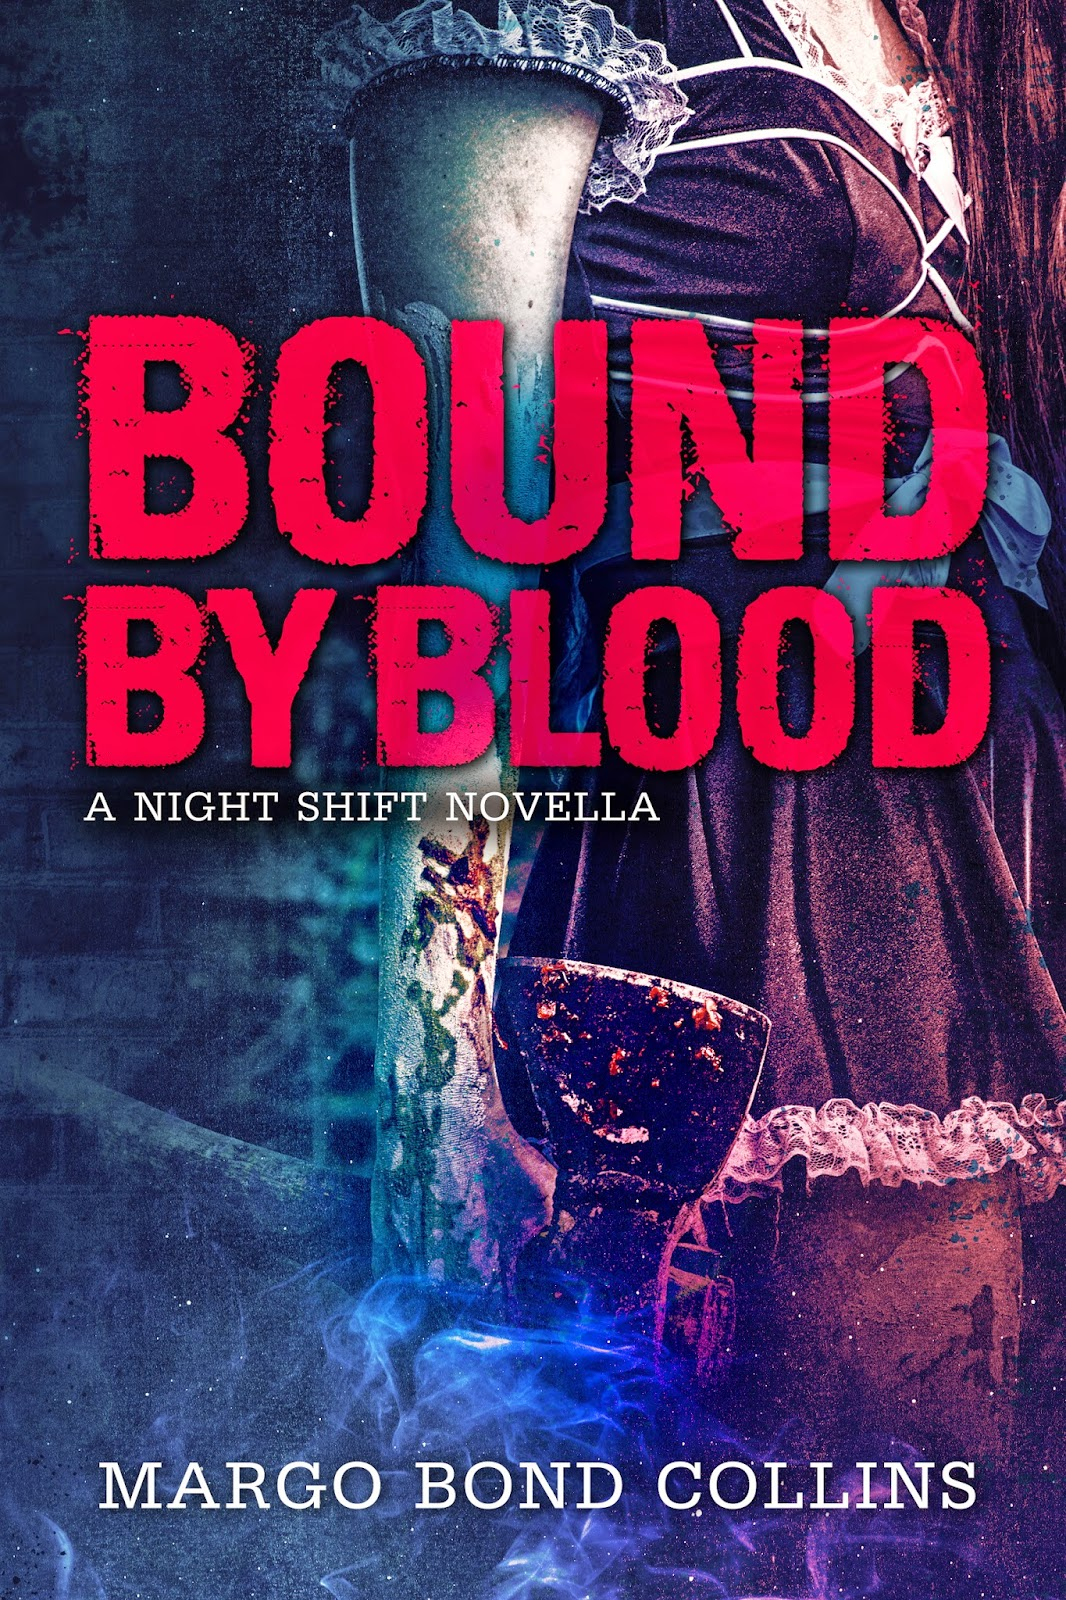 http://www.amazon.com/Bound-Blood-Night-Shift-Novella-ebook/dp/B00PB3AIGC/